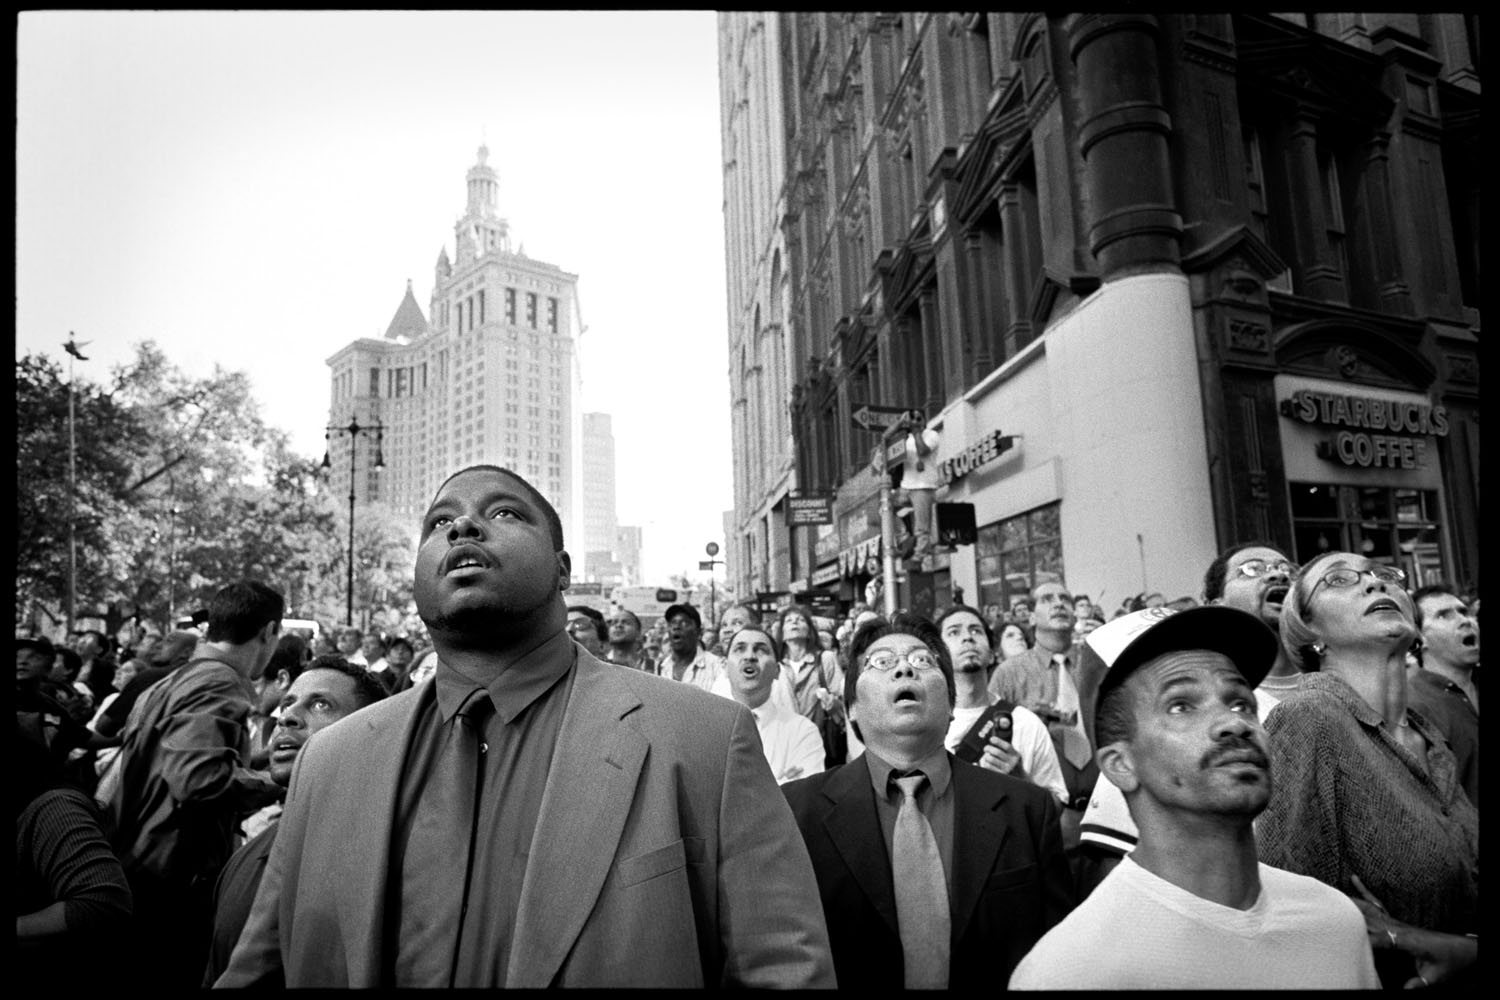 A crowd of stunned New Yorkers witness the collapse of the South Tower of the World Trade Center at 9:59am on September 11, 2001. The photographer used social media to identify Benjamin Tabile, the man wearing  glasses in the center of the frame.